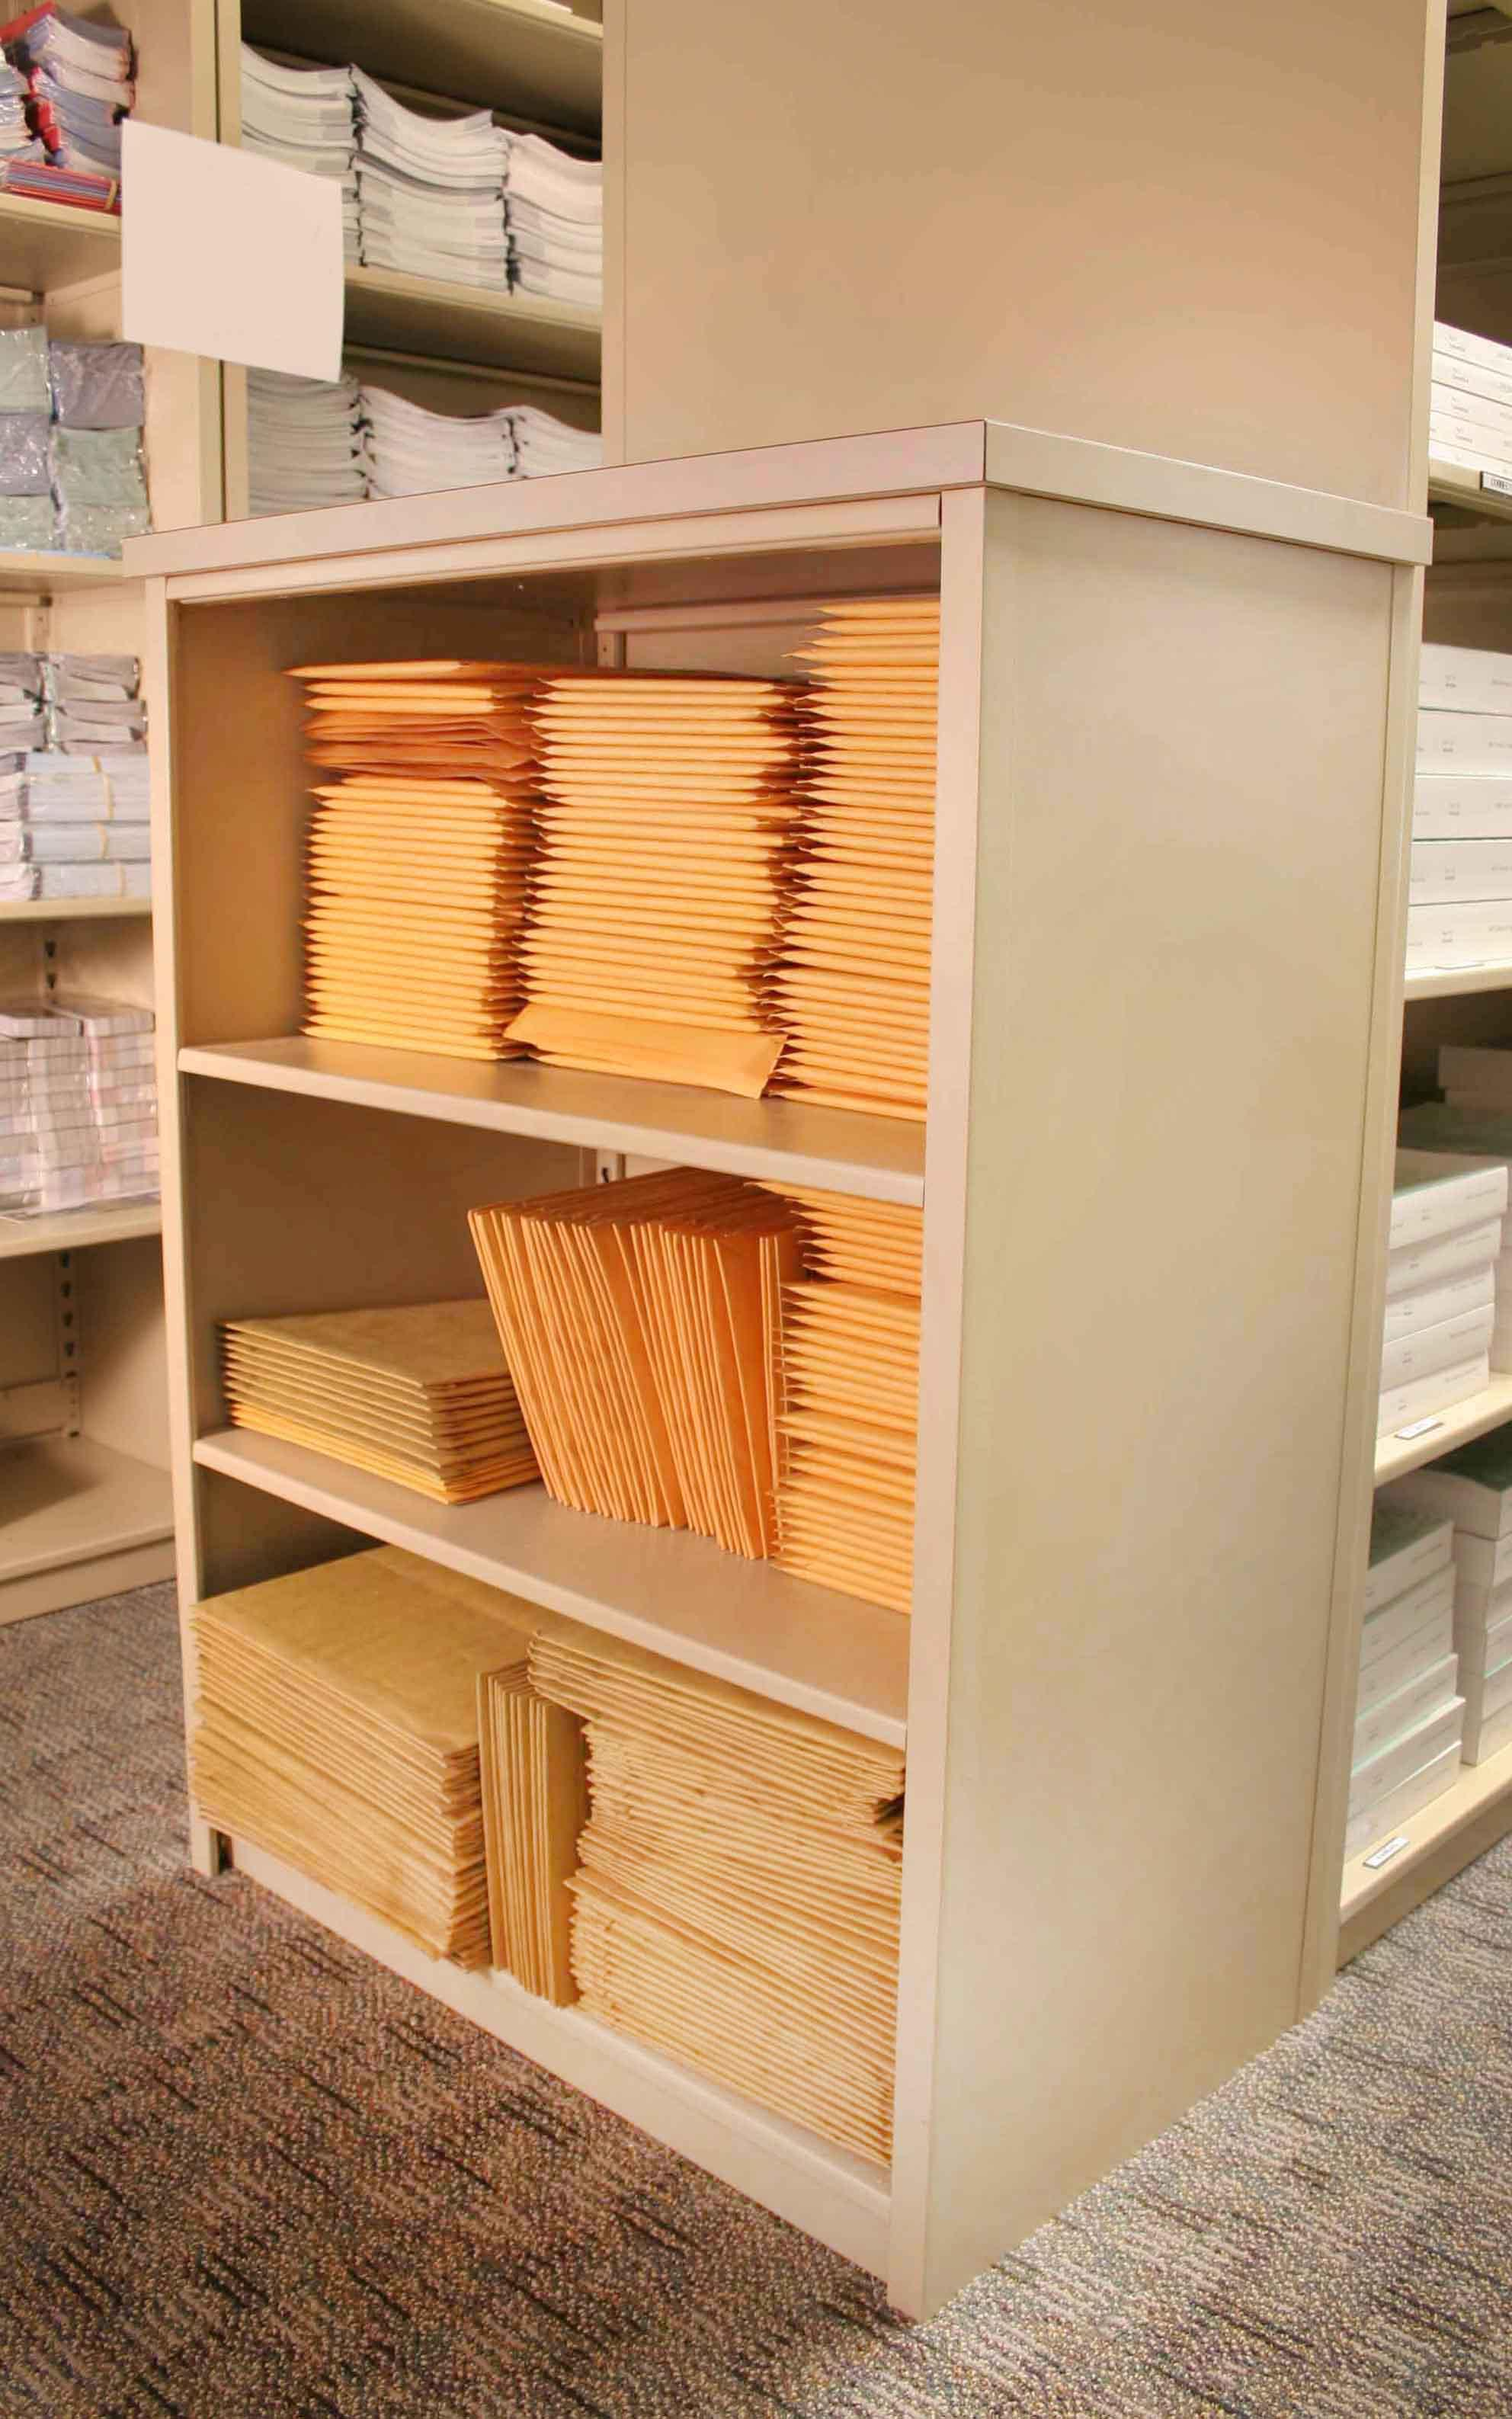 Sales office uses Aurora Storage Shelving for lead and literature fulfillment.